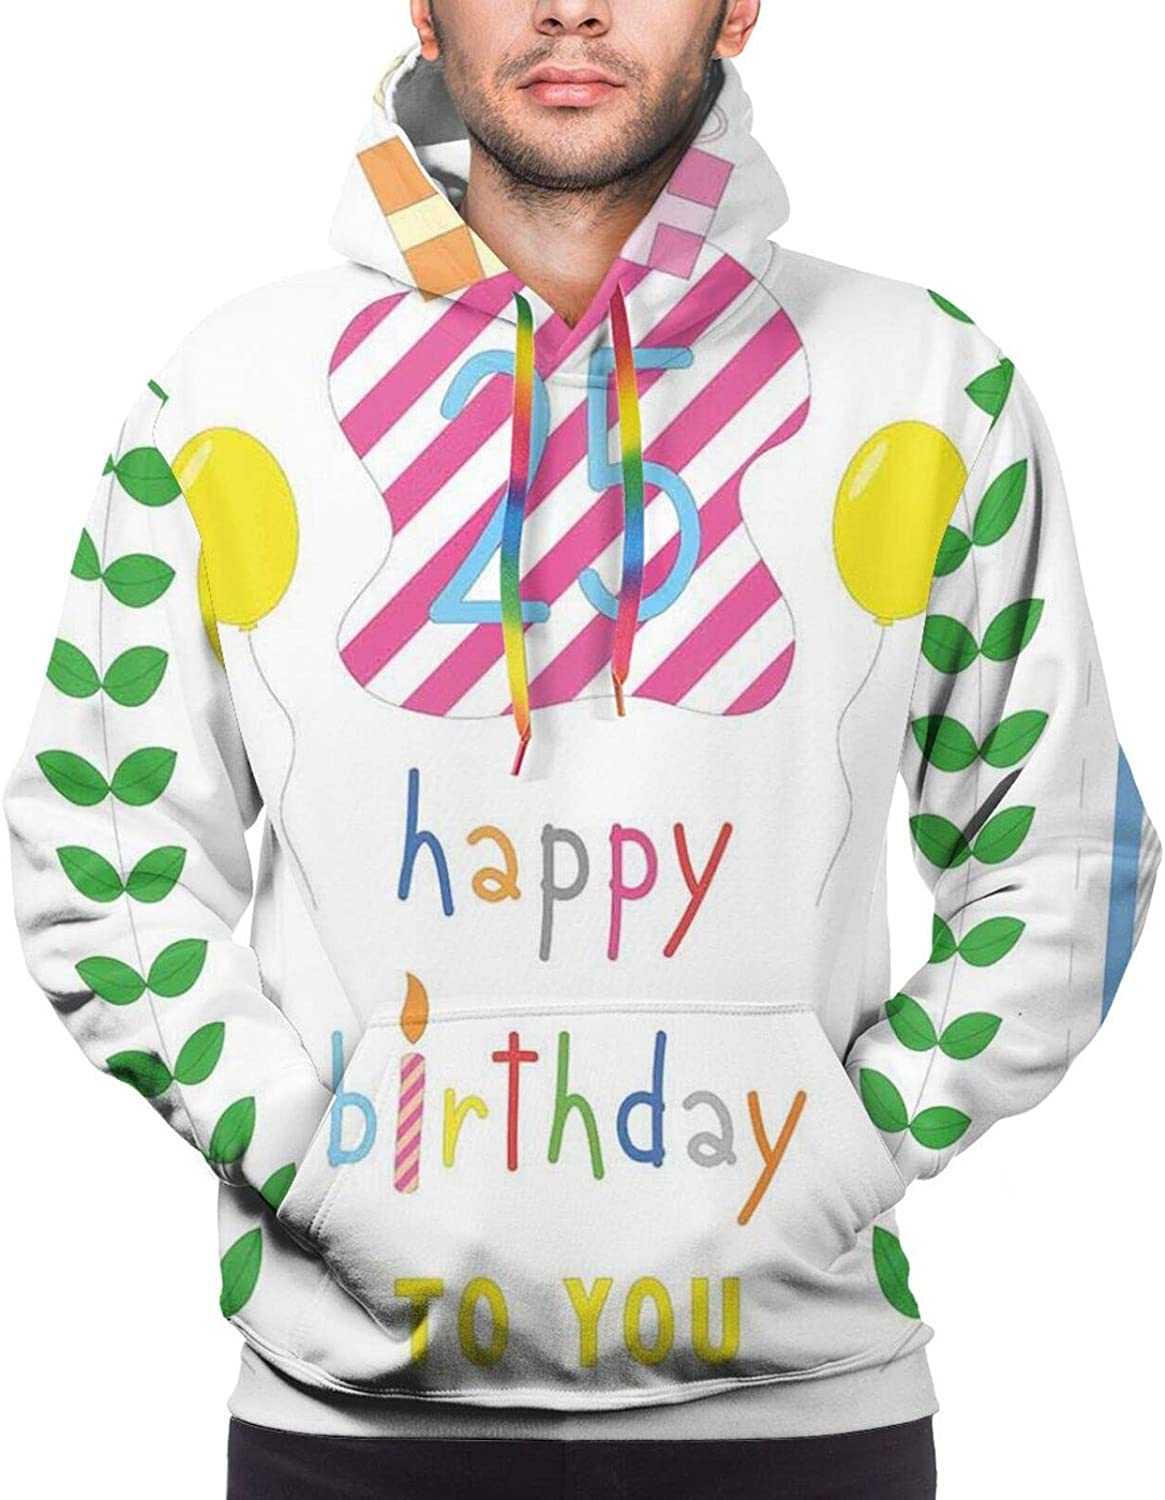 Men's Hoodies Sweatshirts,Happiness Nature Themed Composition Pastel Presents Balloons